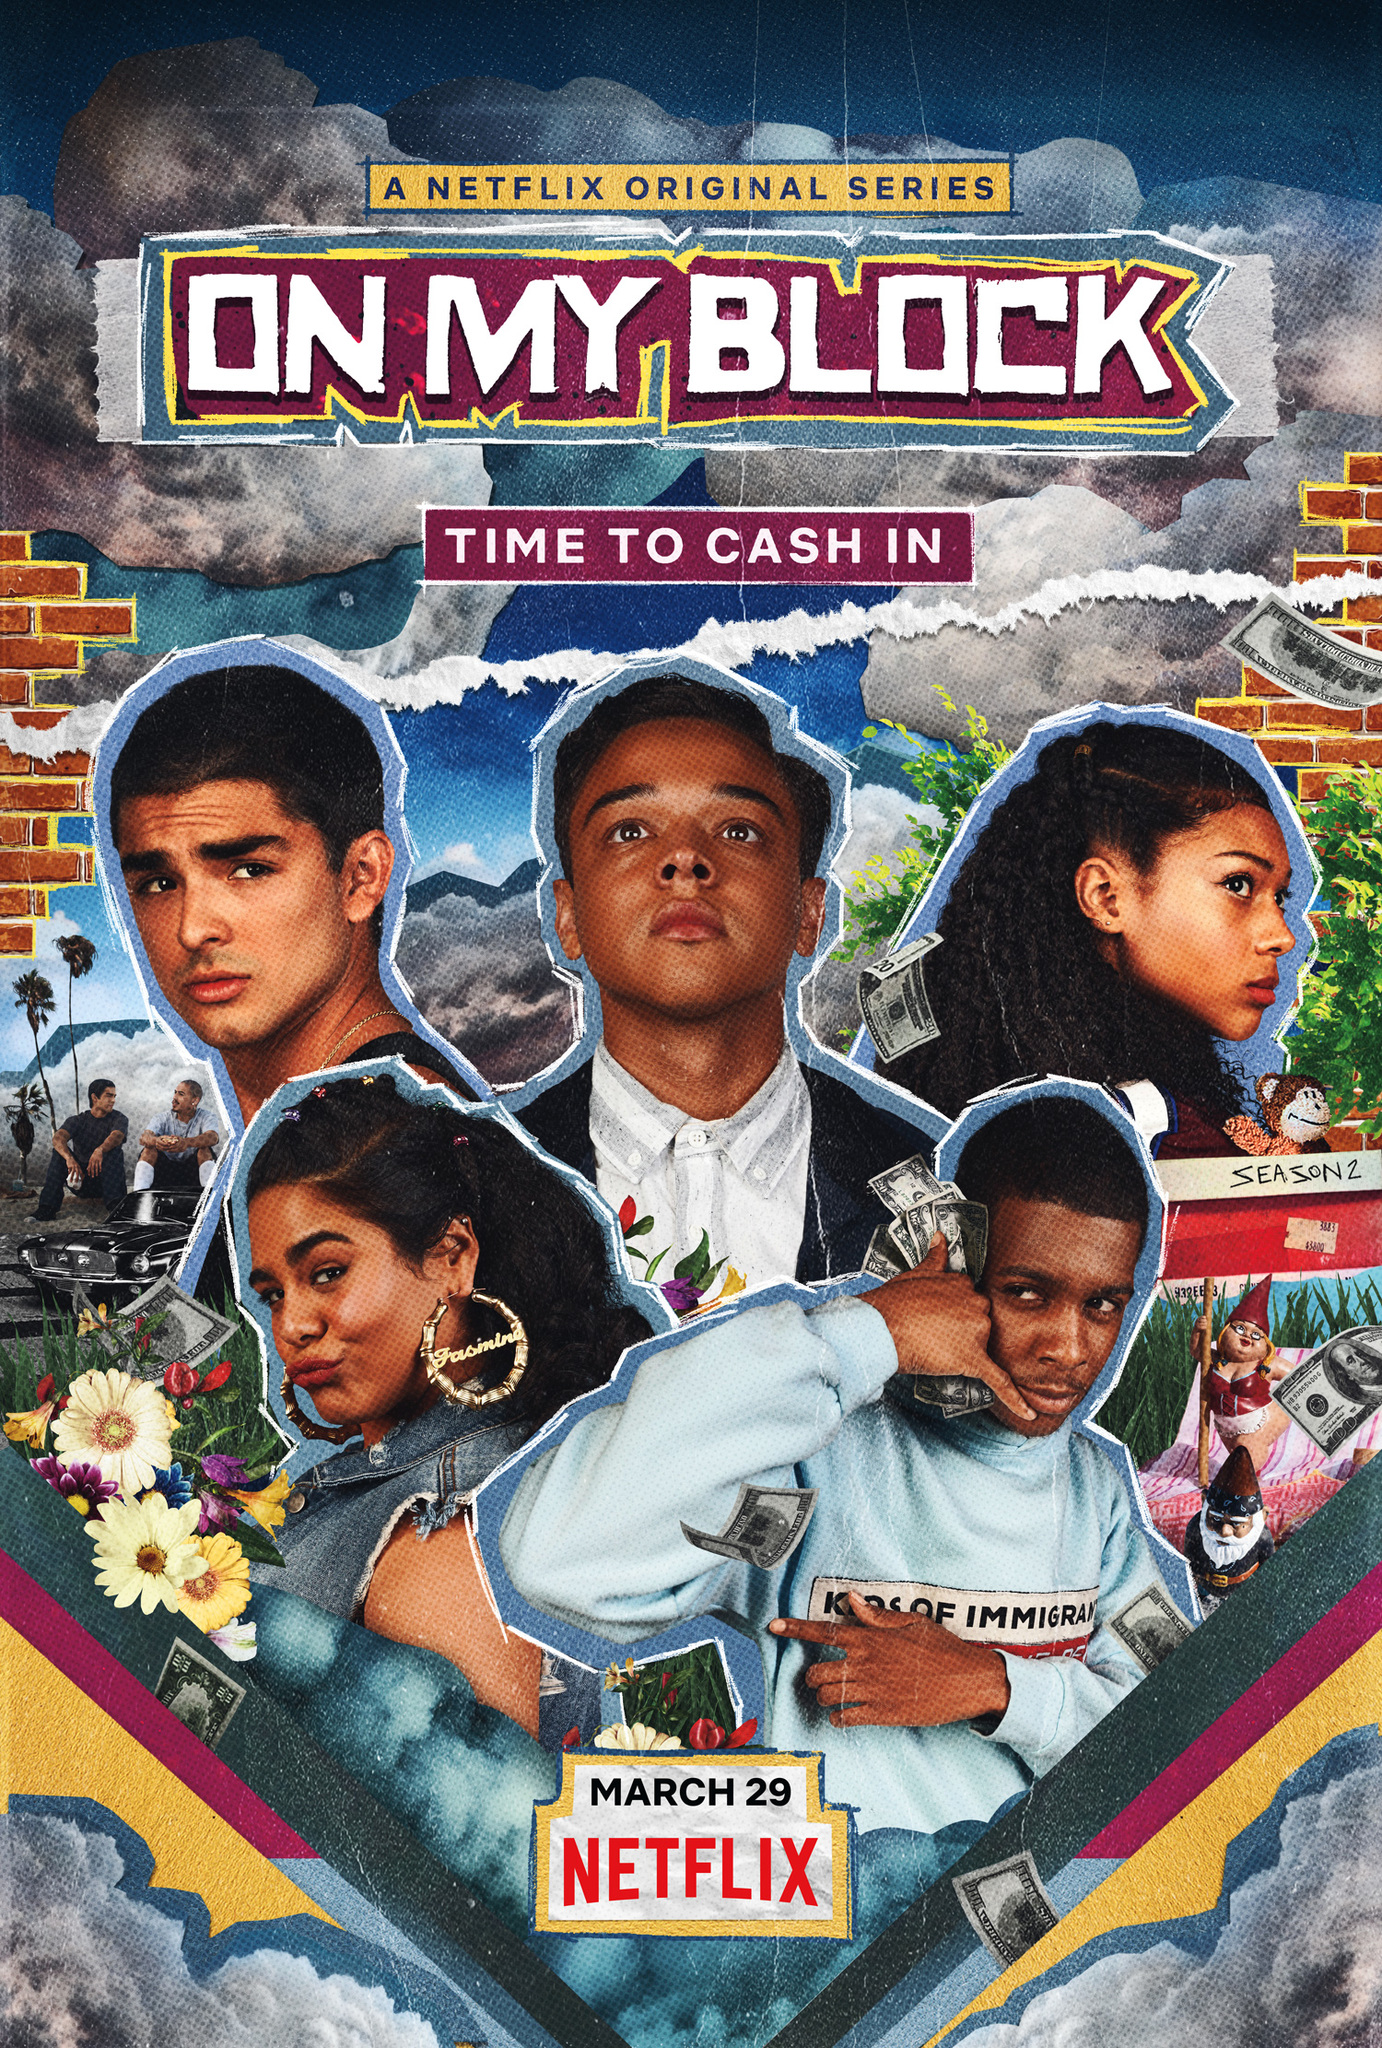 On My Block (TV Series 2018– ) - IMDb